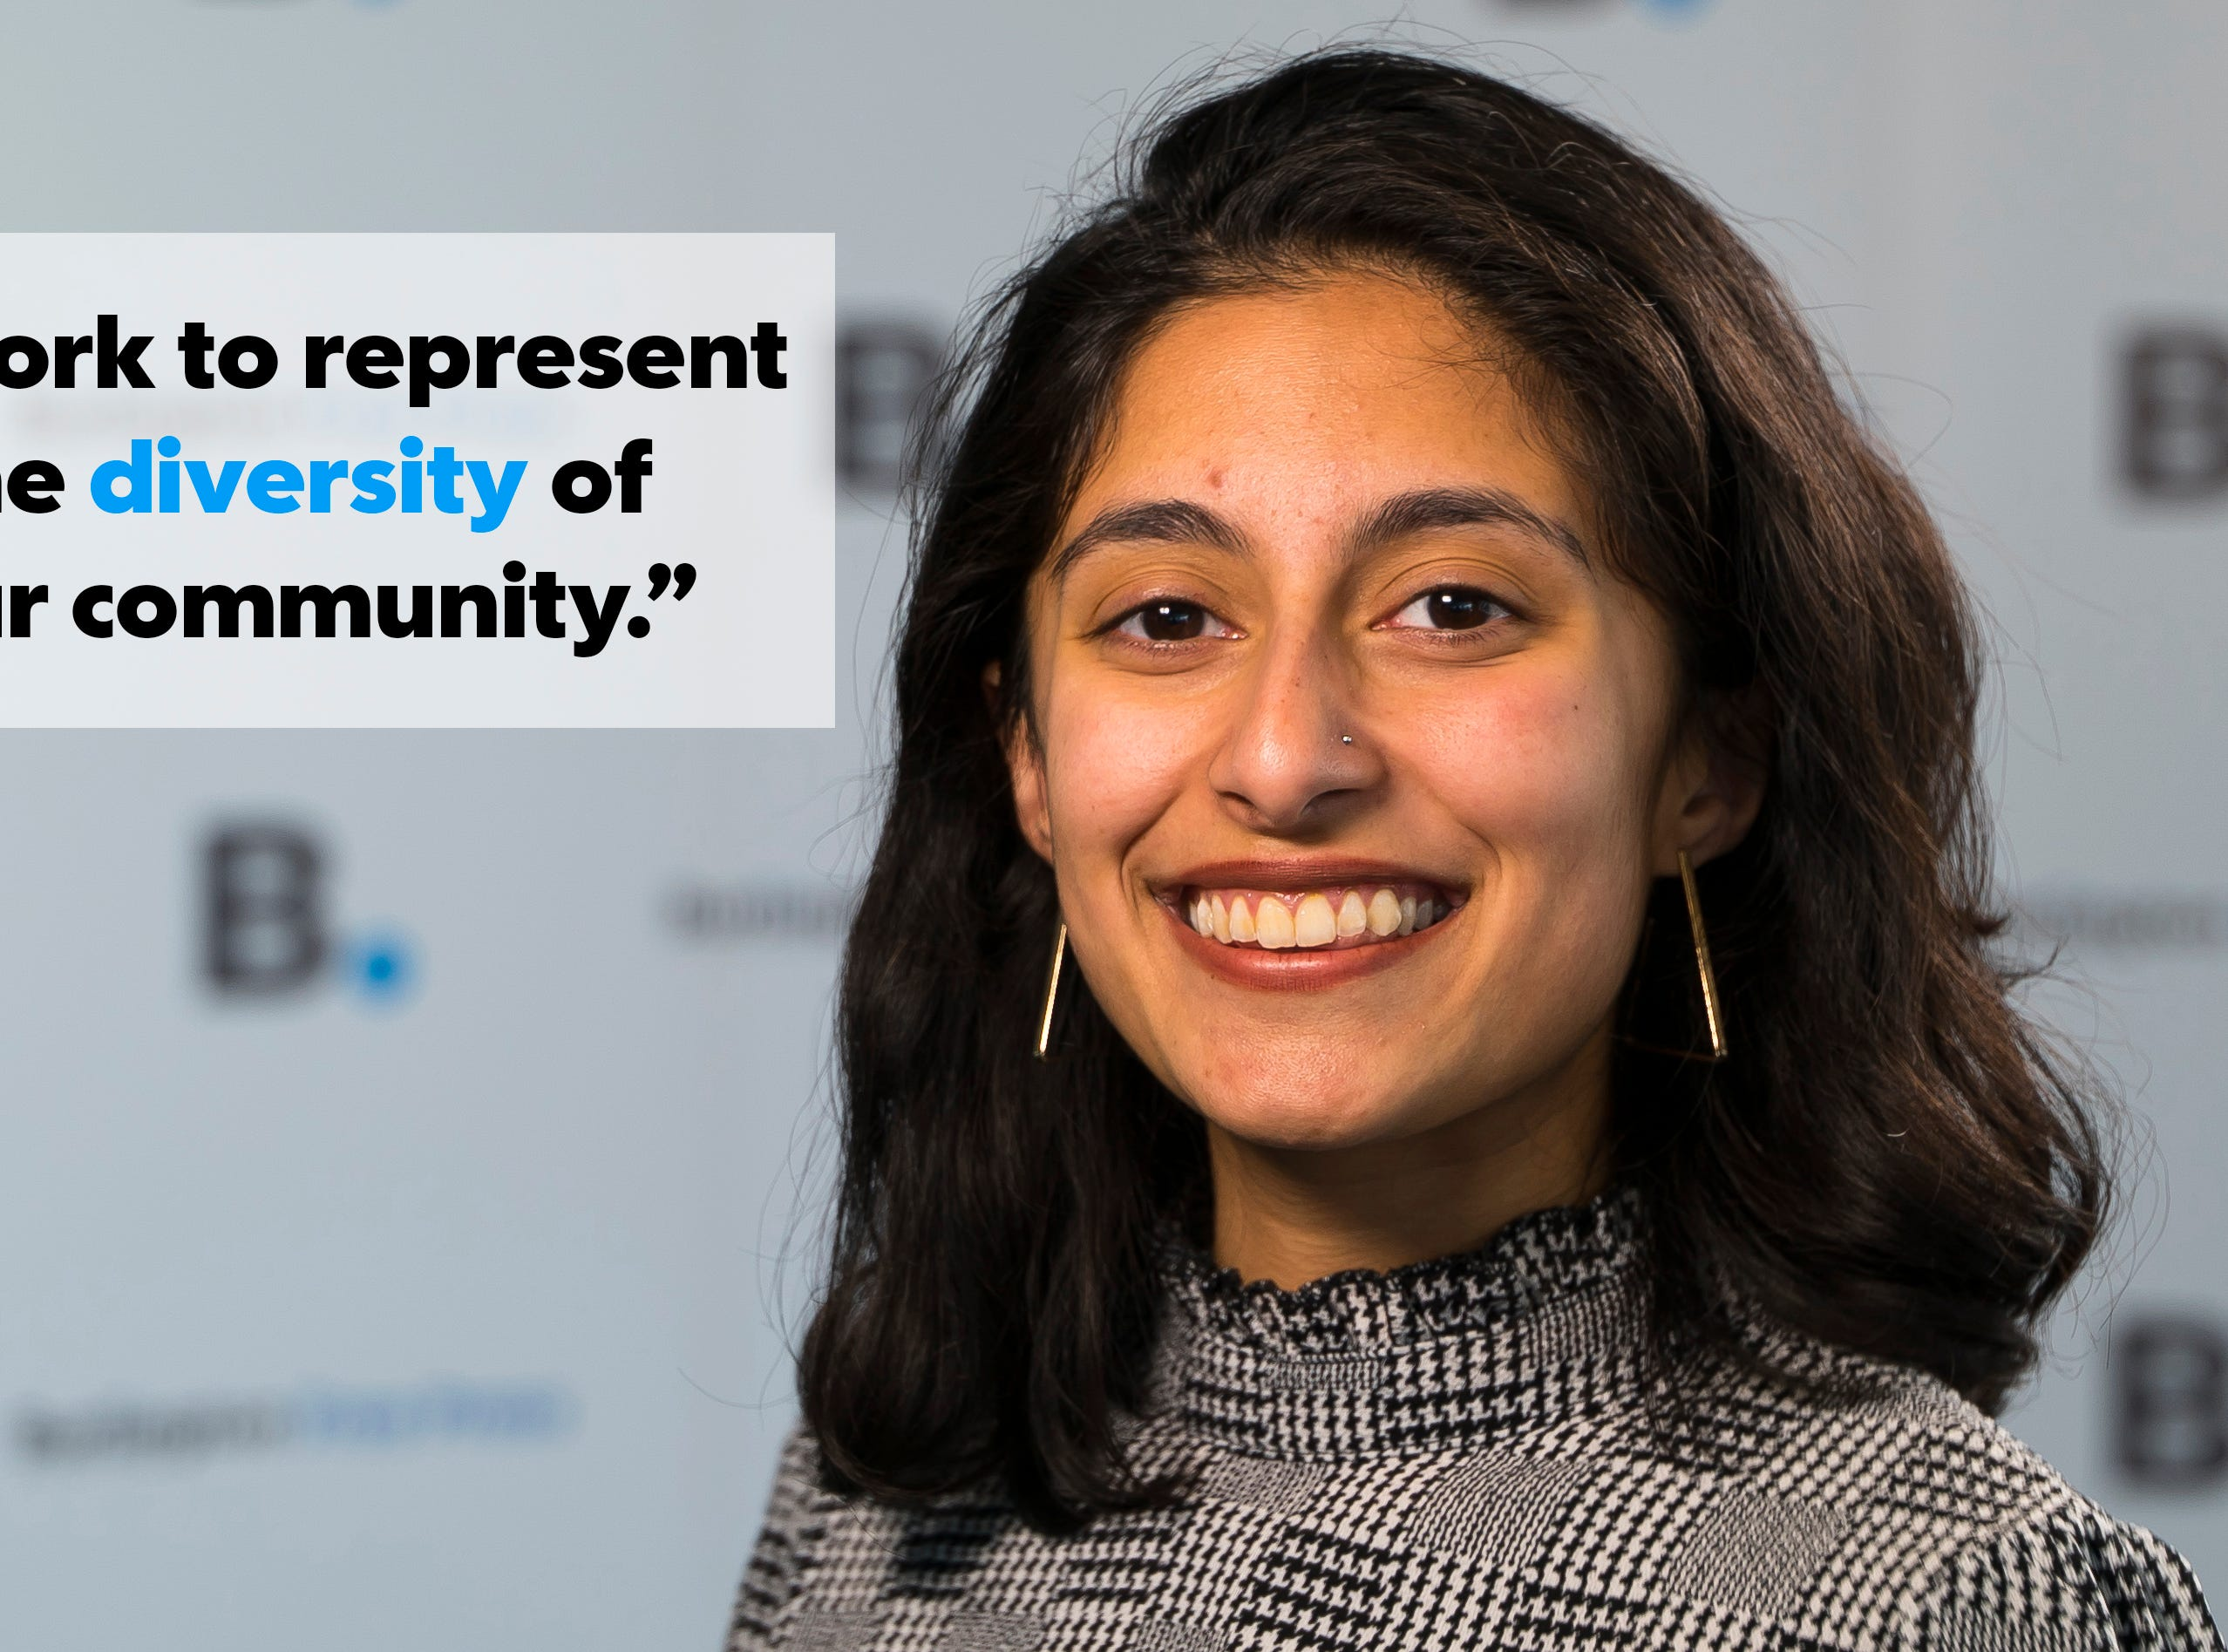 Maleeha Syed joined the Free Press in 2018 and reports stories that impact people's daily lives or spark deeper conversations. She is committed to creating news that includes the many perspectives.